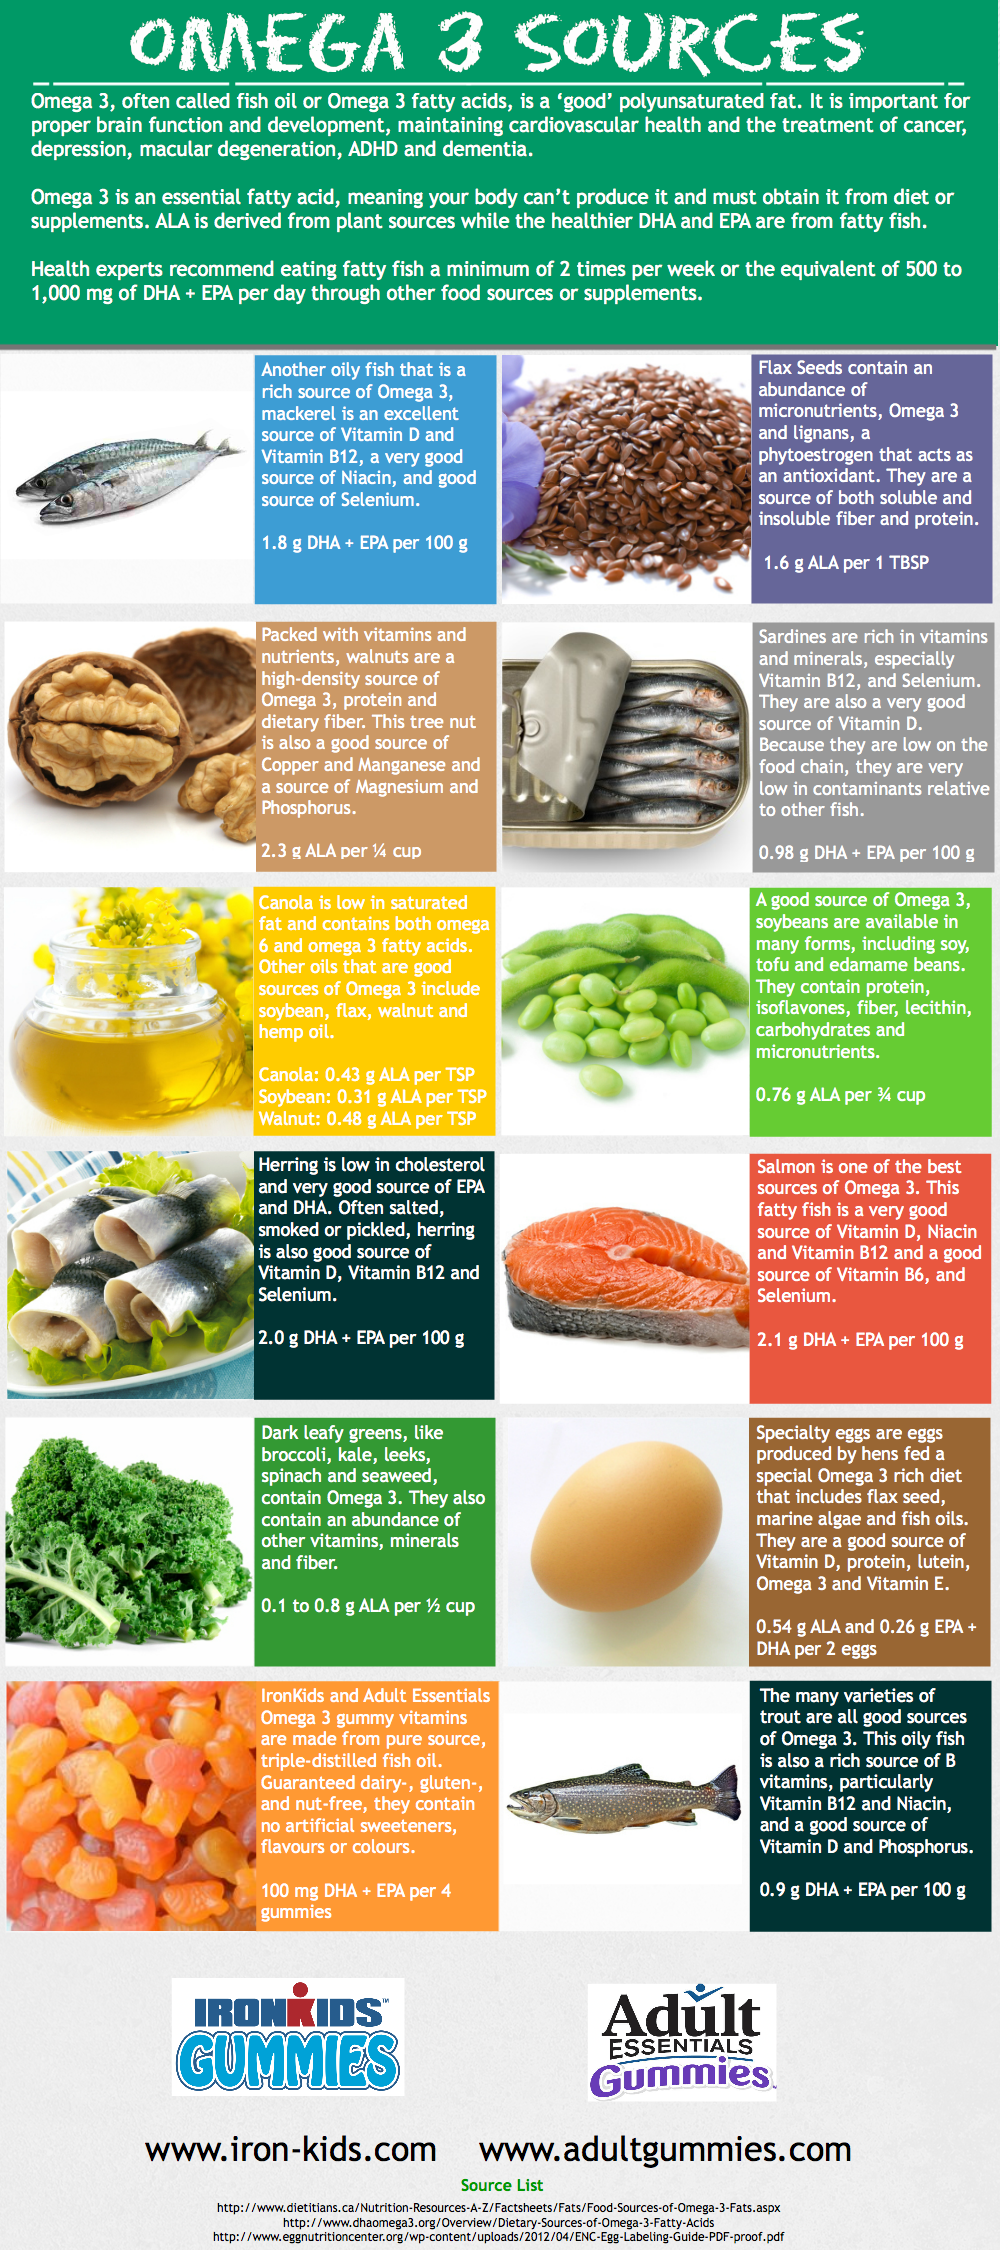 Life science nutritionals releases a new infographic for Fish rich in omega 3